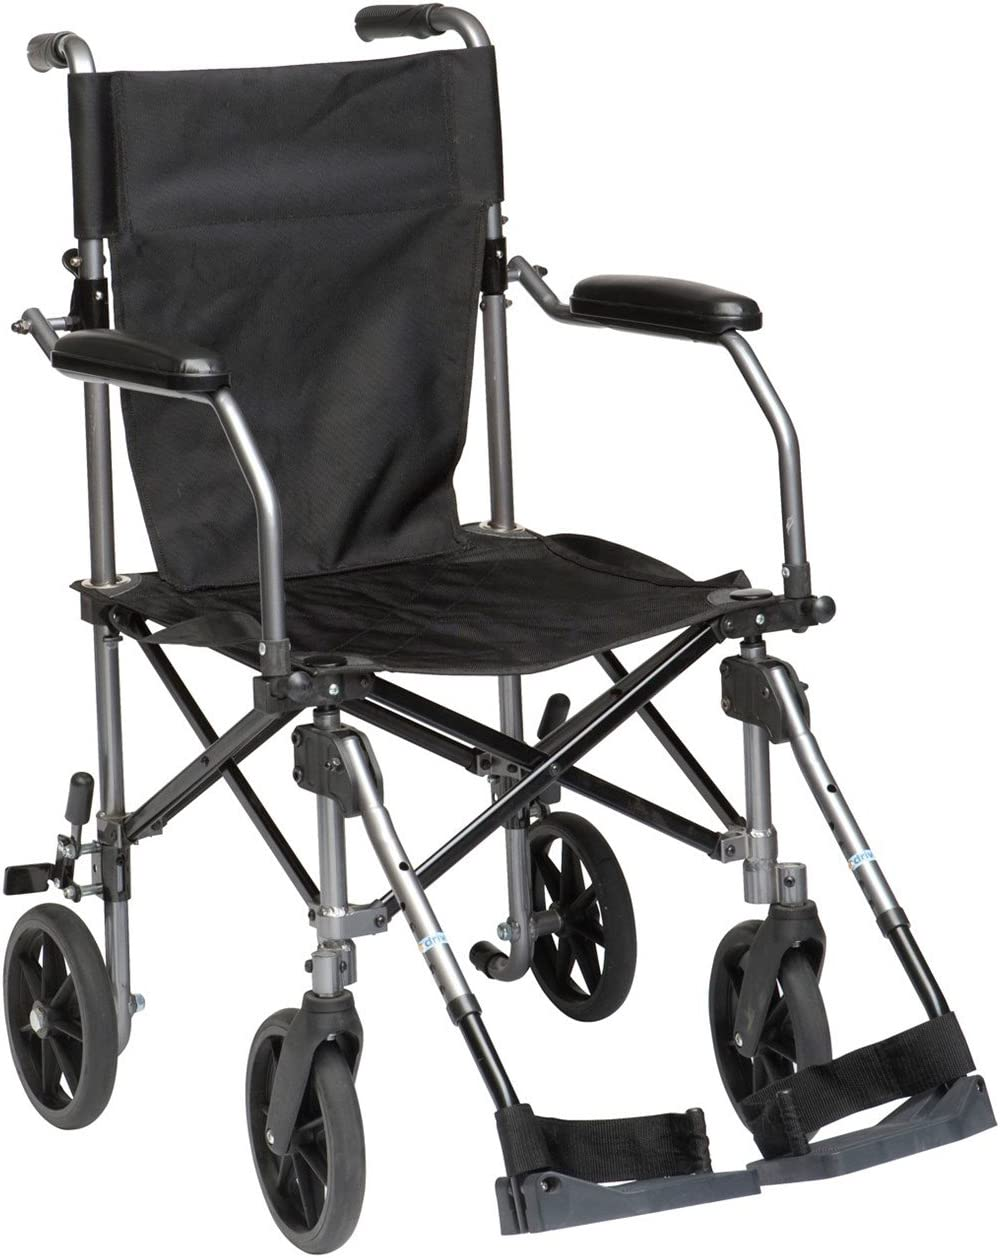 Drive Medical Travelite Transport Wheelchair Chair in a Bag, Black